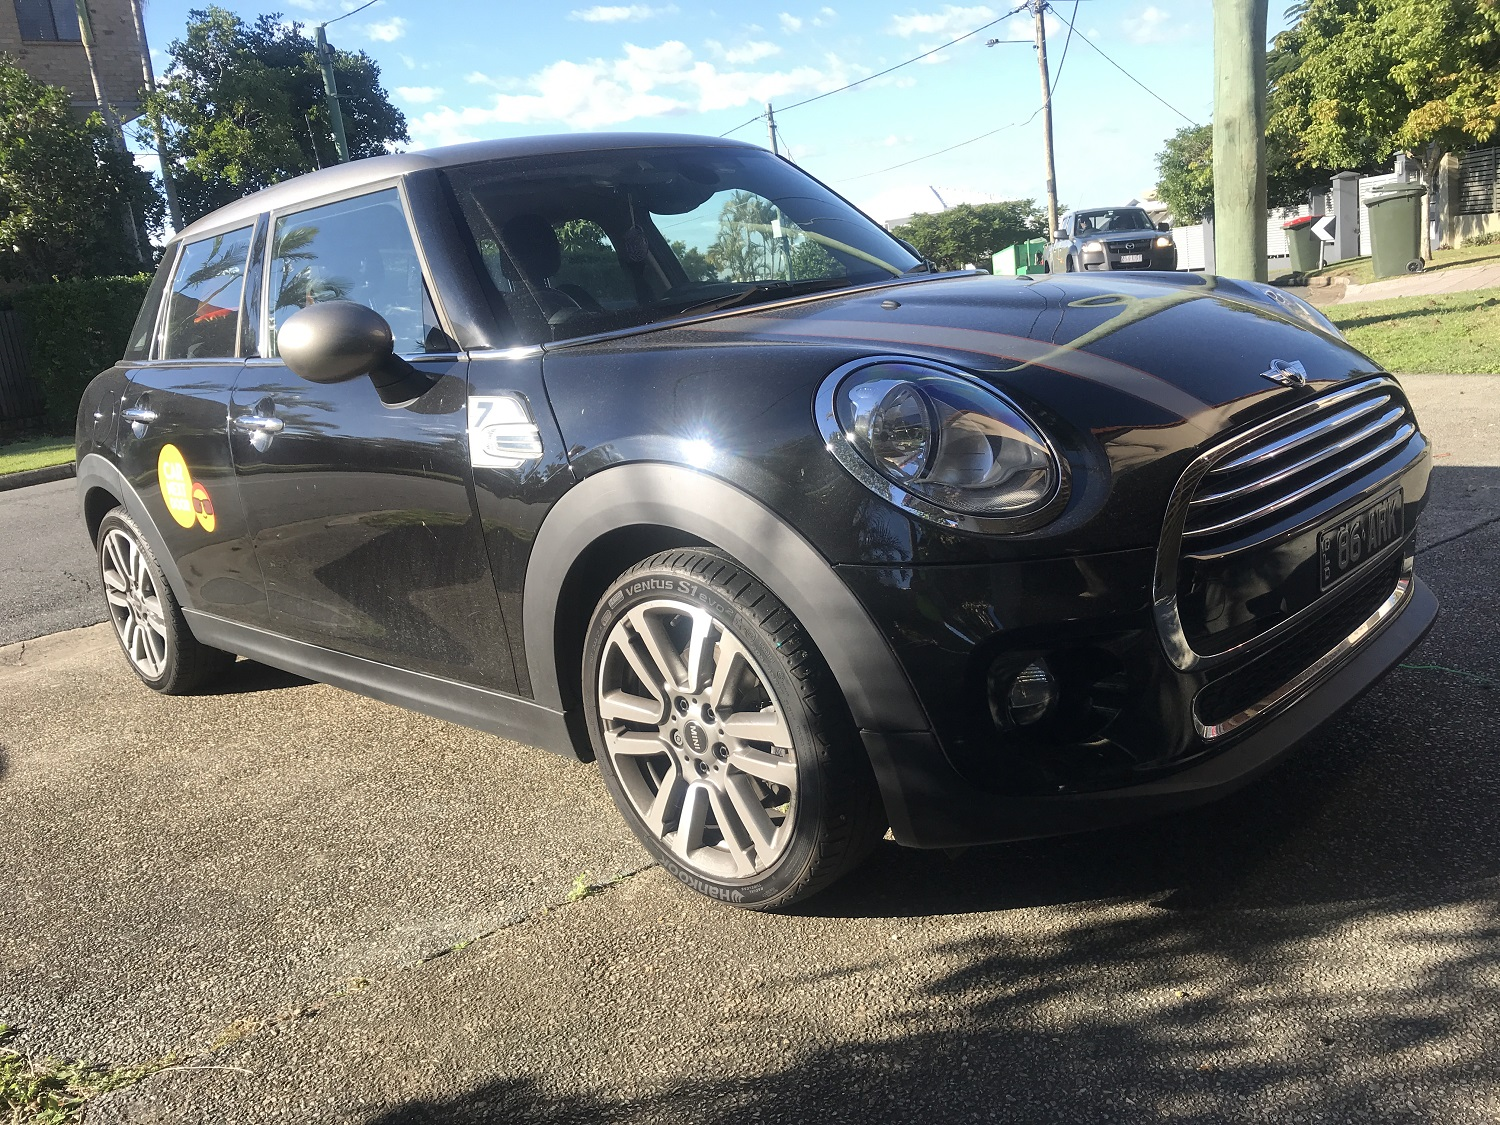 Picture of Onkar Singh's 2017 Mini Cooper Hatchback